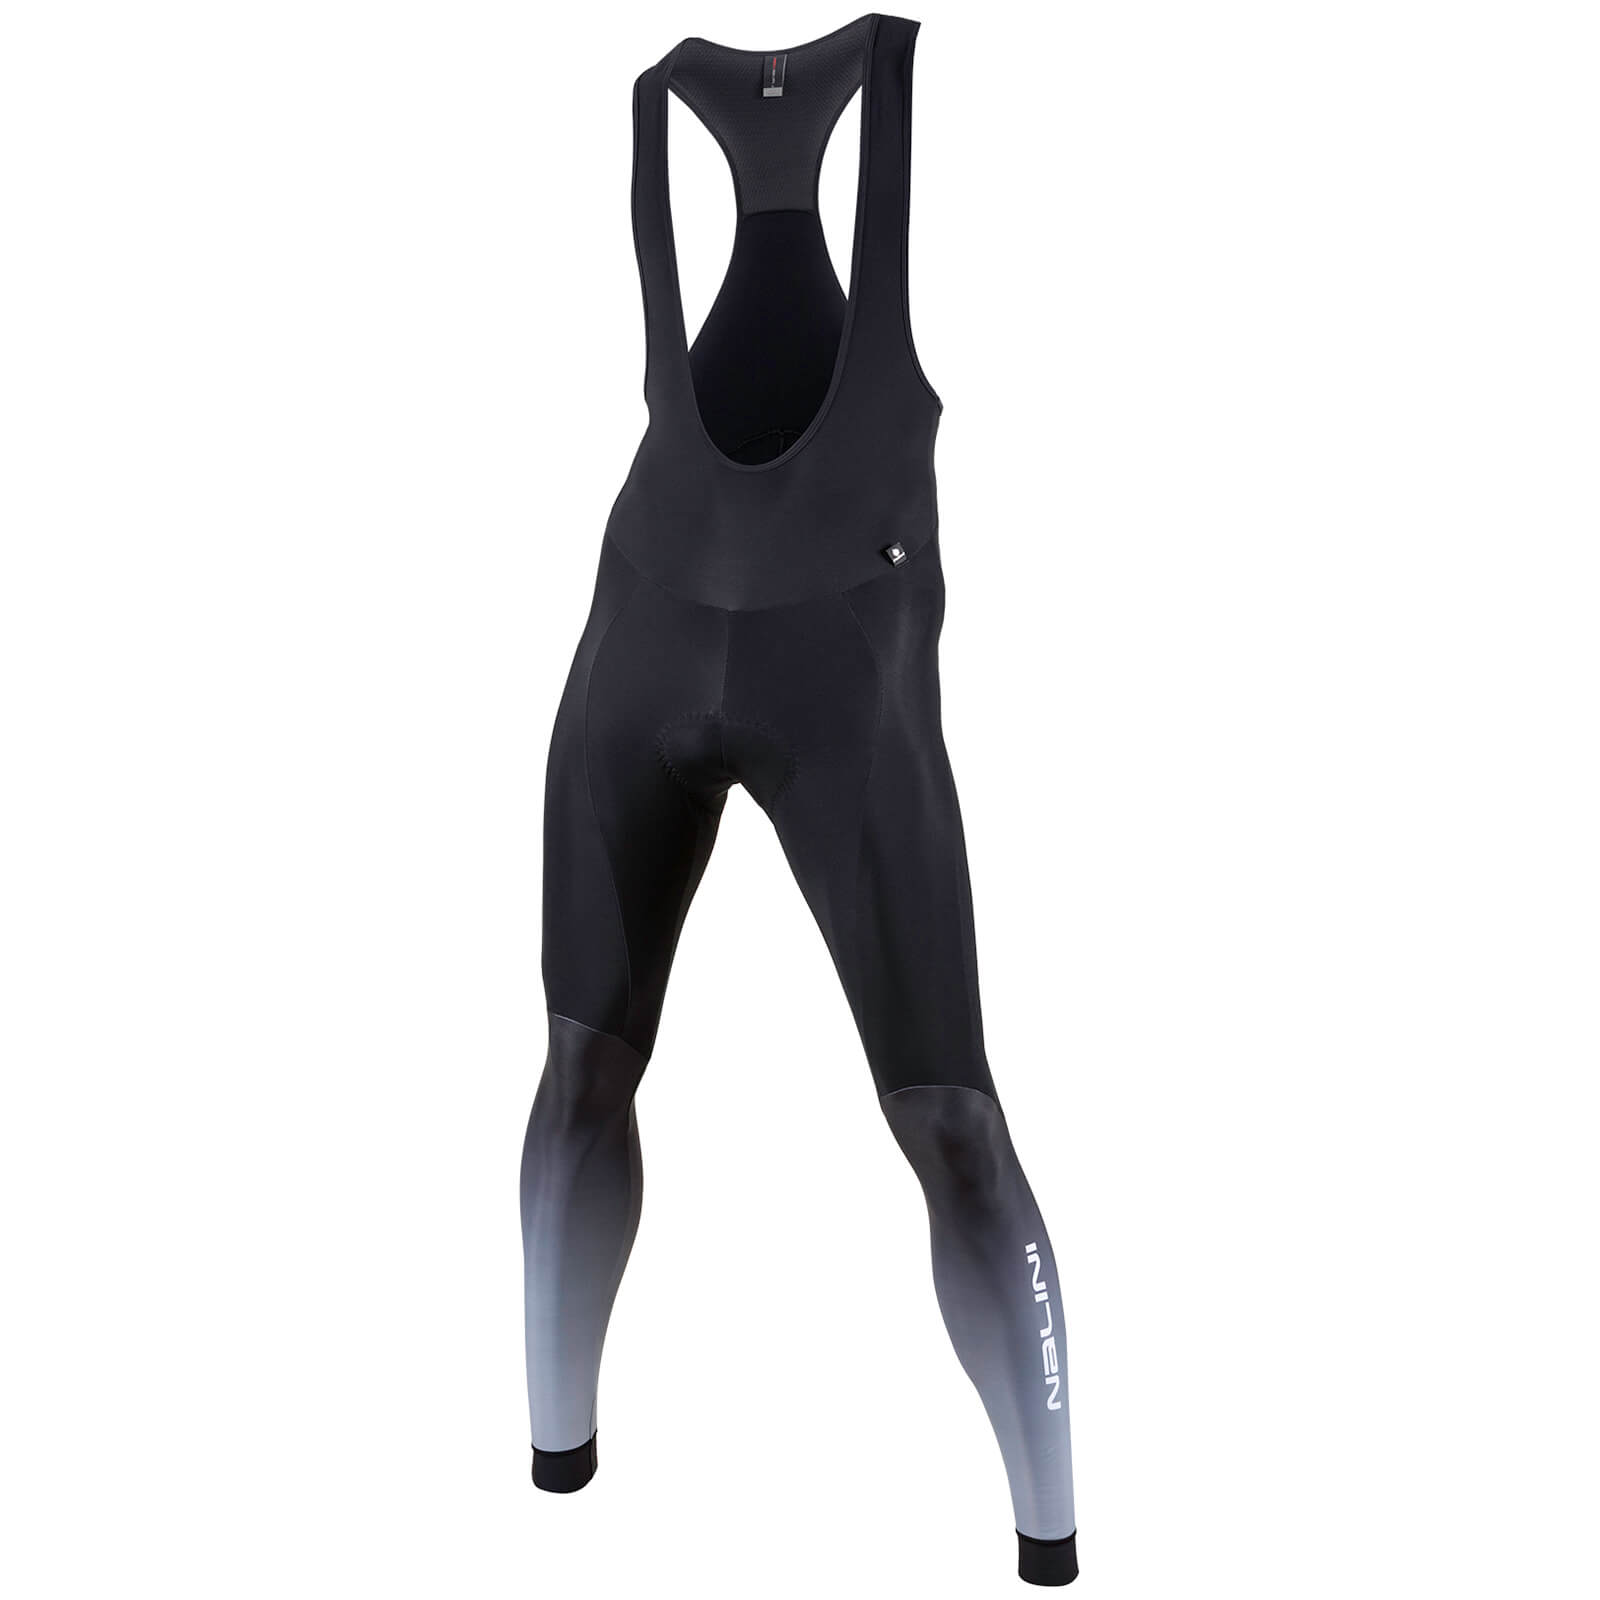 Nalini Etamin Thermo Bib Tights - Black